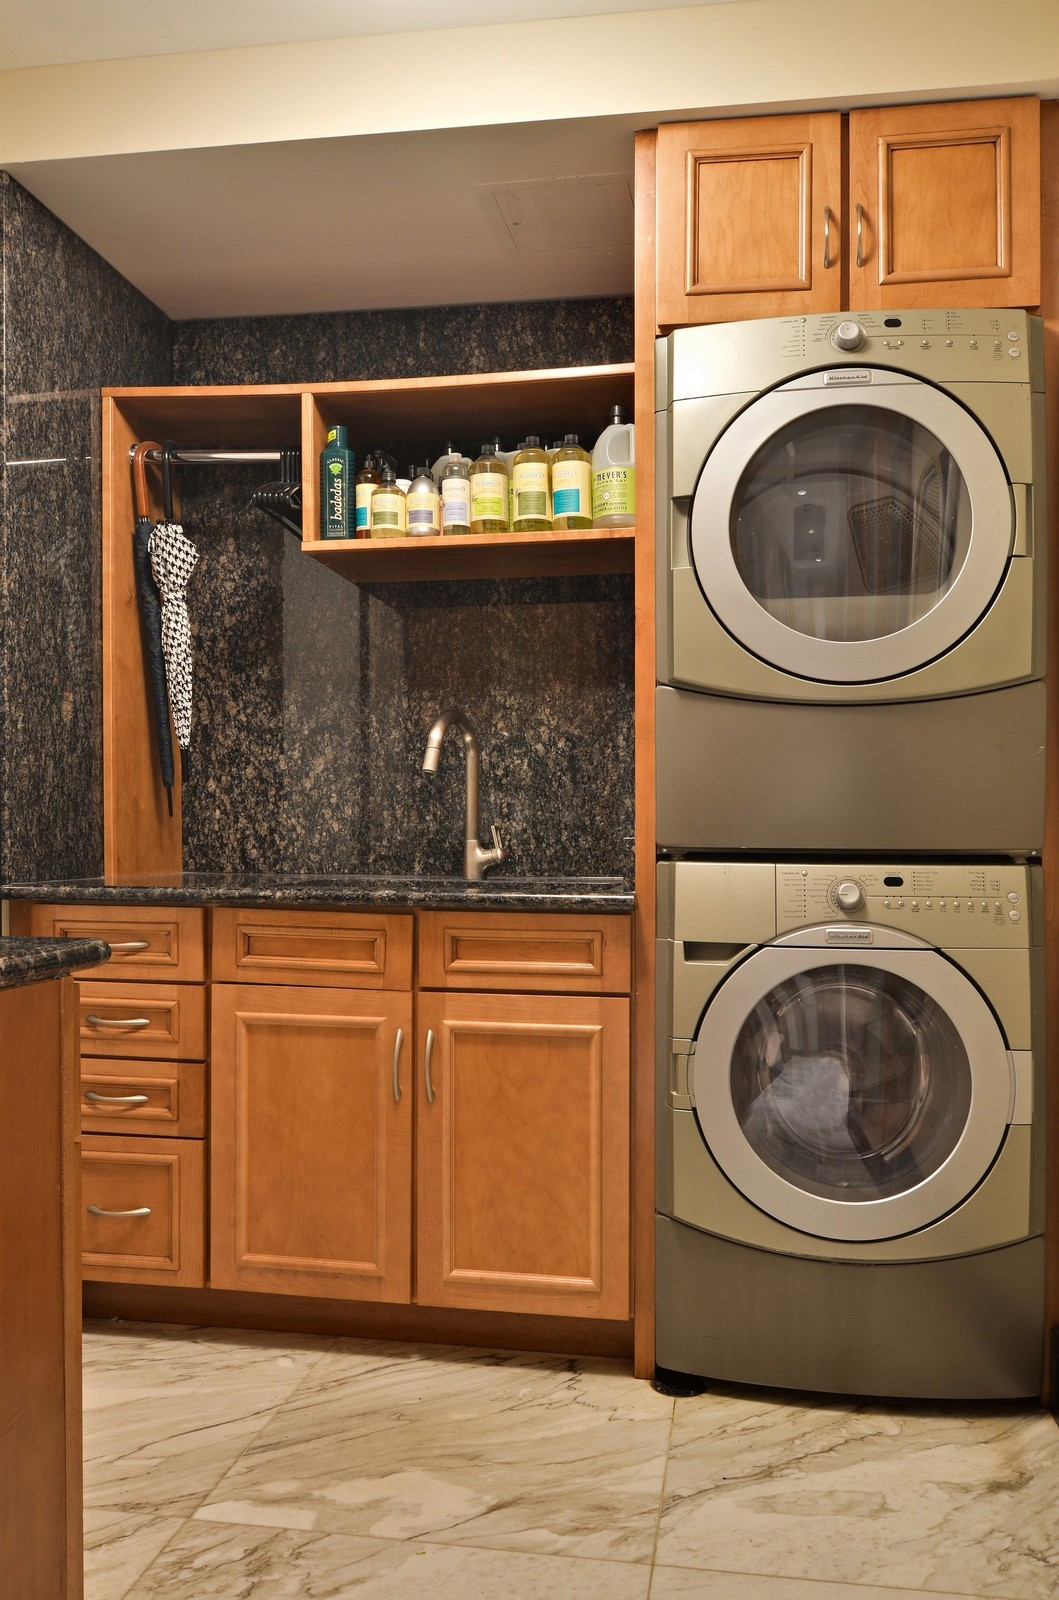 Real Estate Photography - 840 N Lake Shore Dr, Unit 201, Chicago, IL, 60611 - Laundry Room